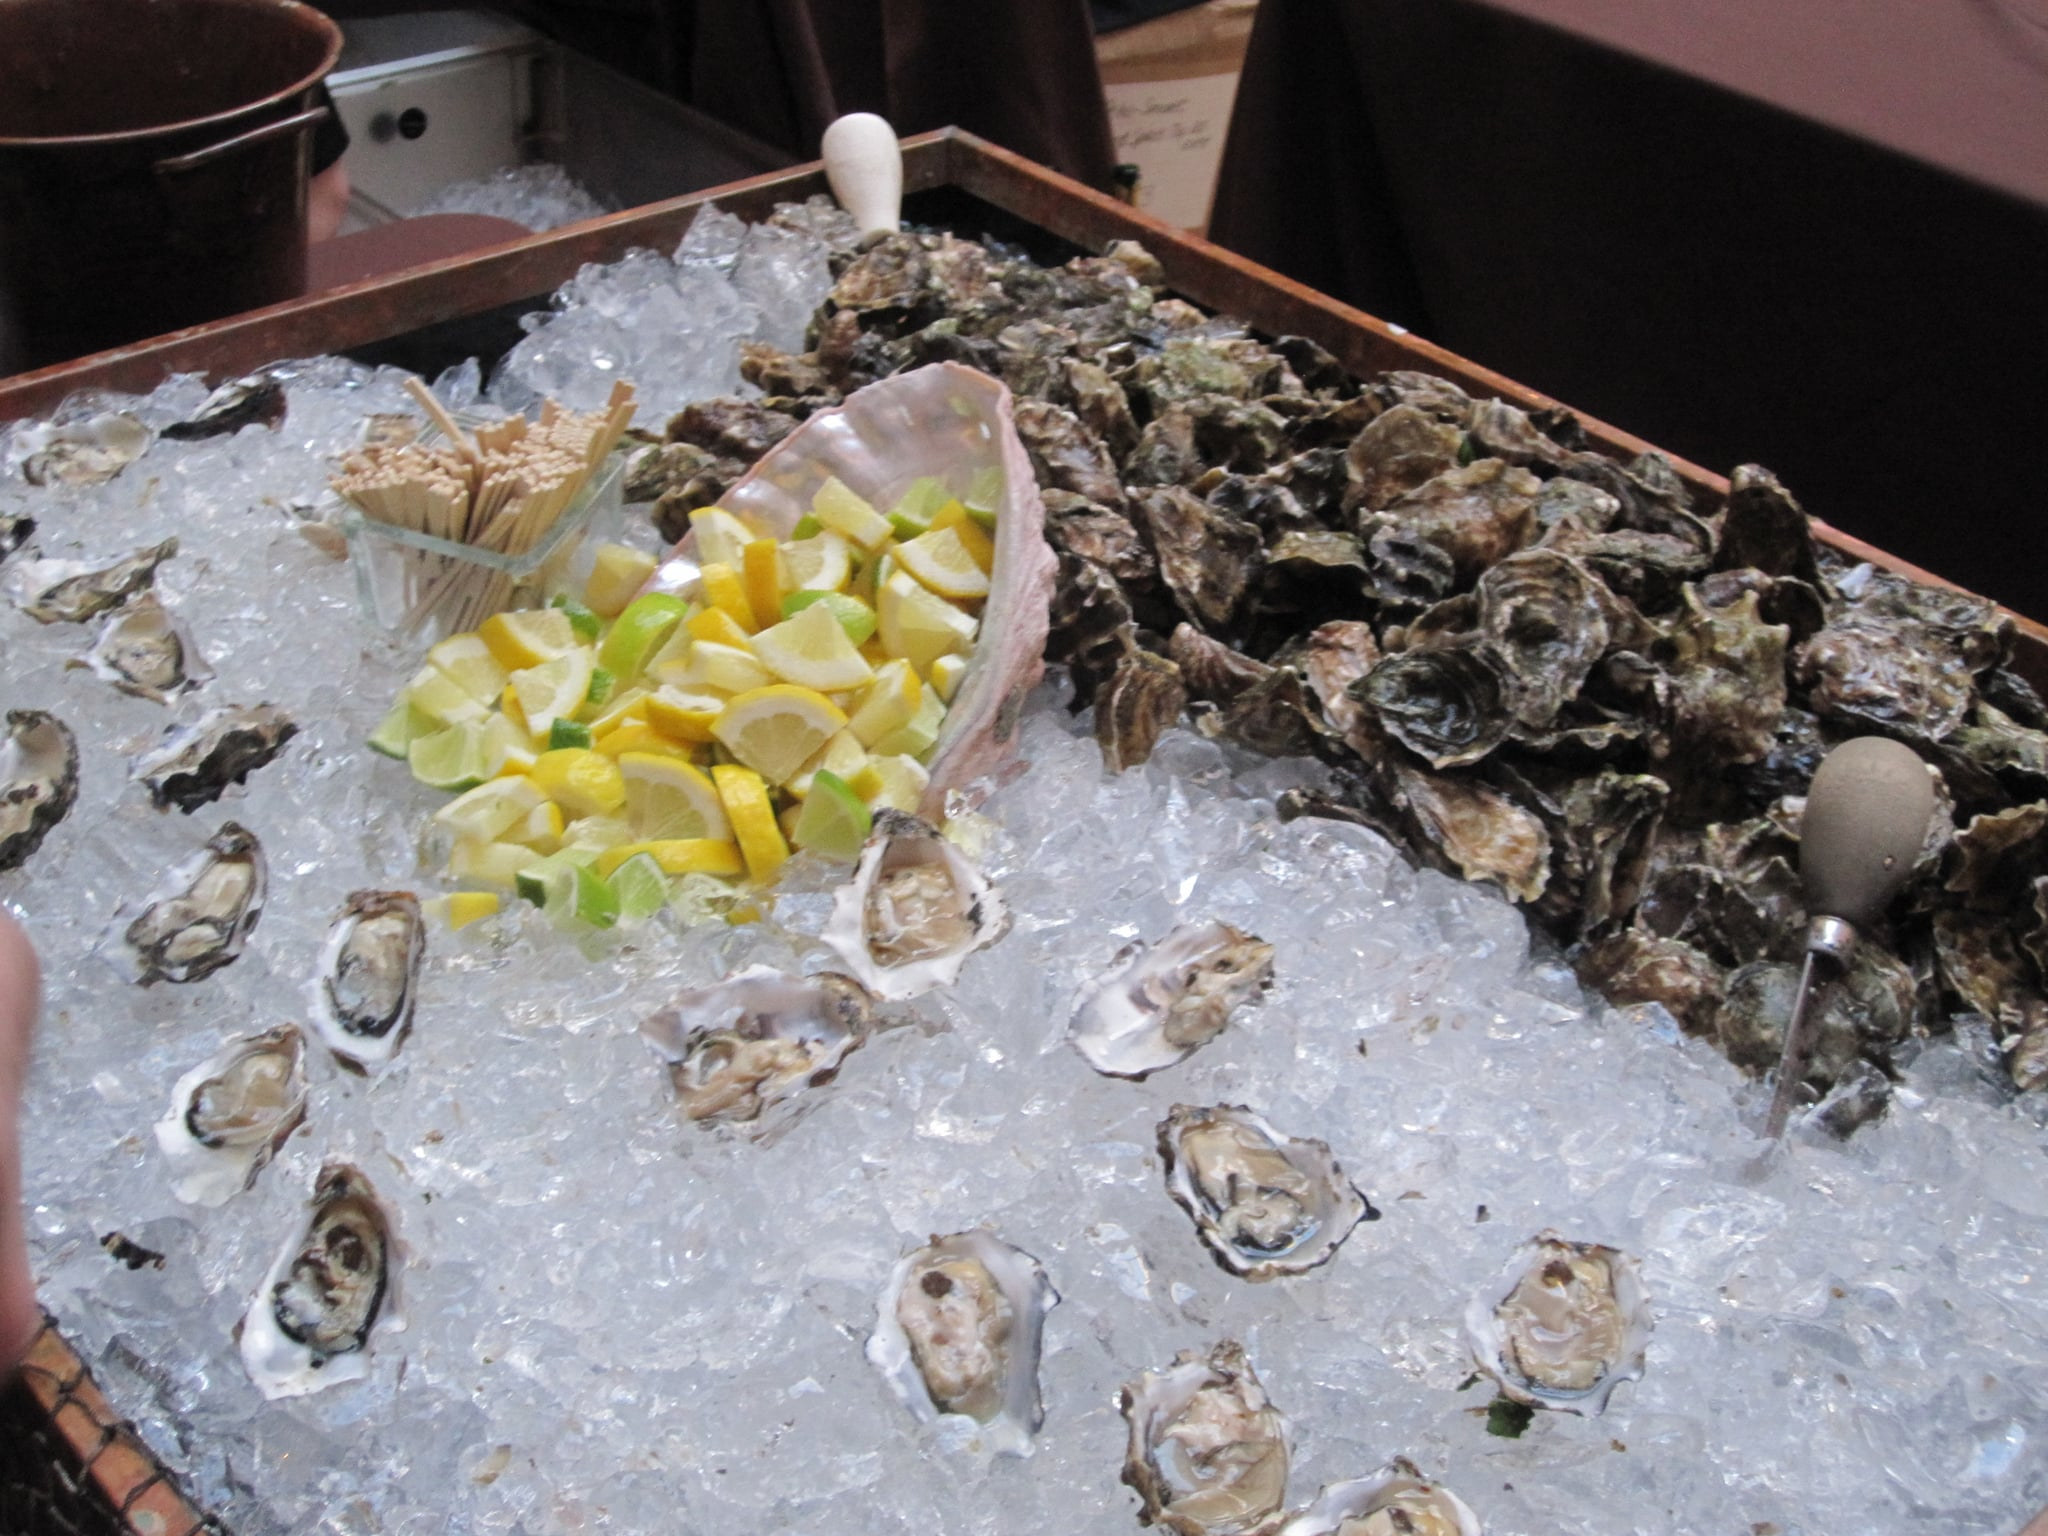 The gentlemen from Hog Island Oyster Farm said they would be shucking at least a thousand oysters throughout the evening.